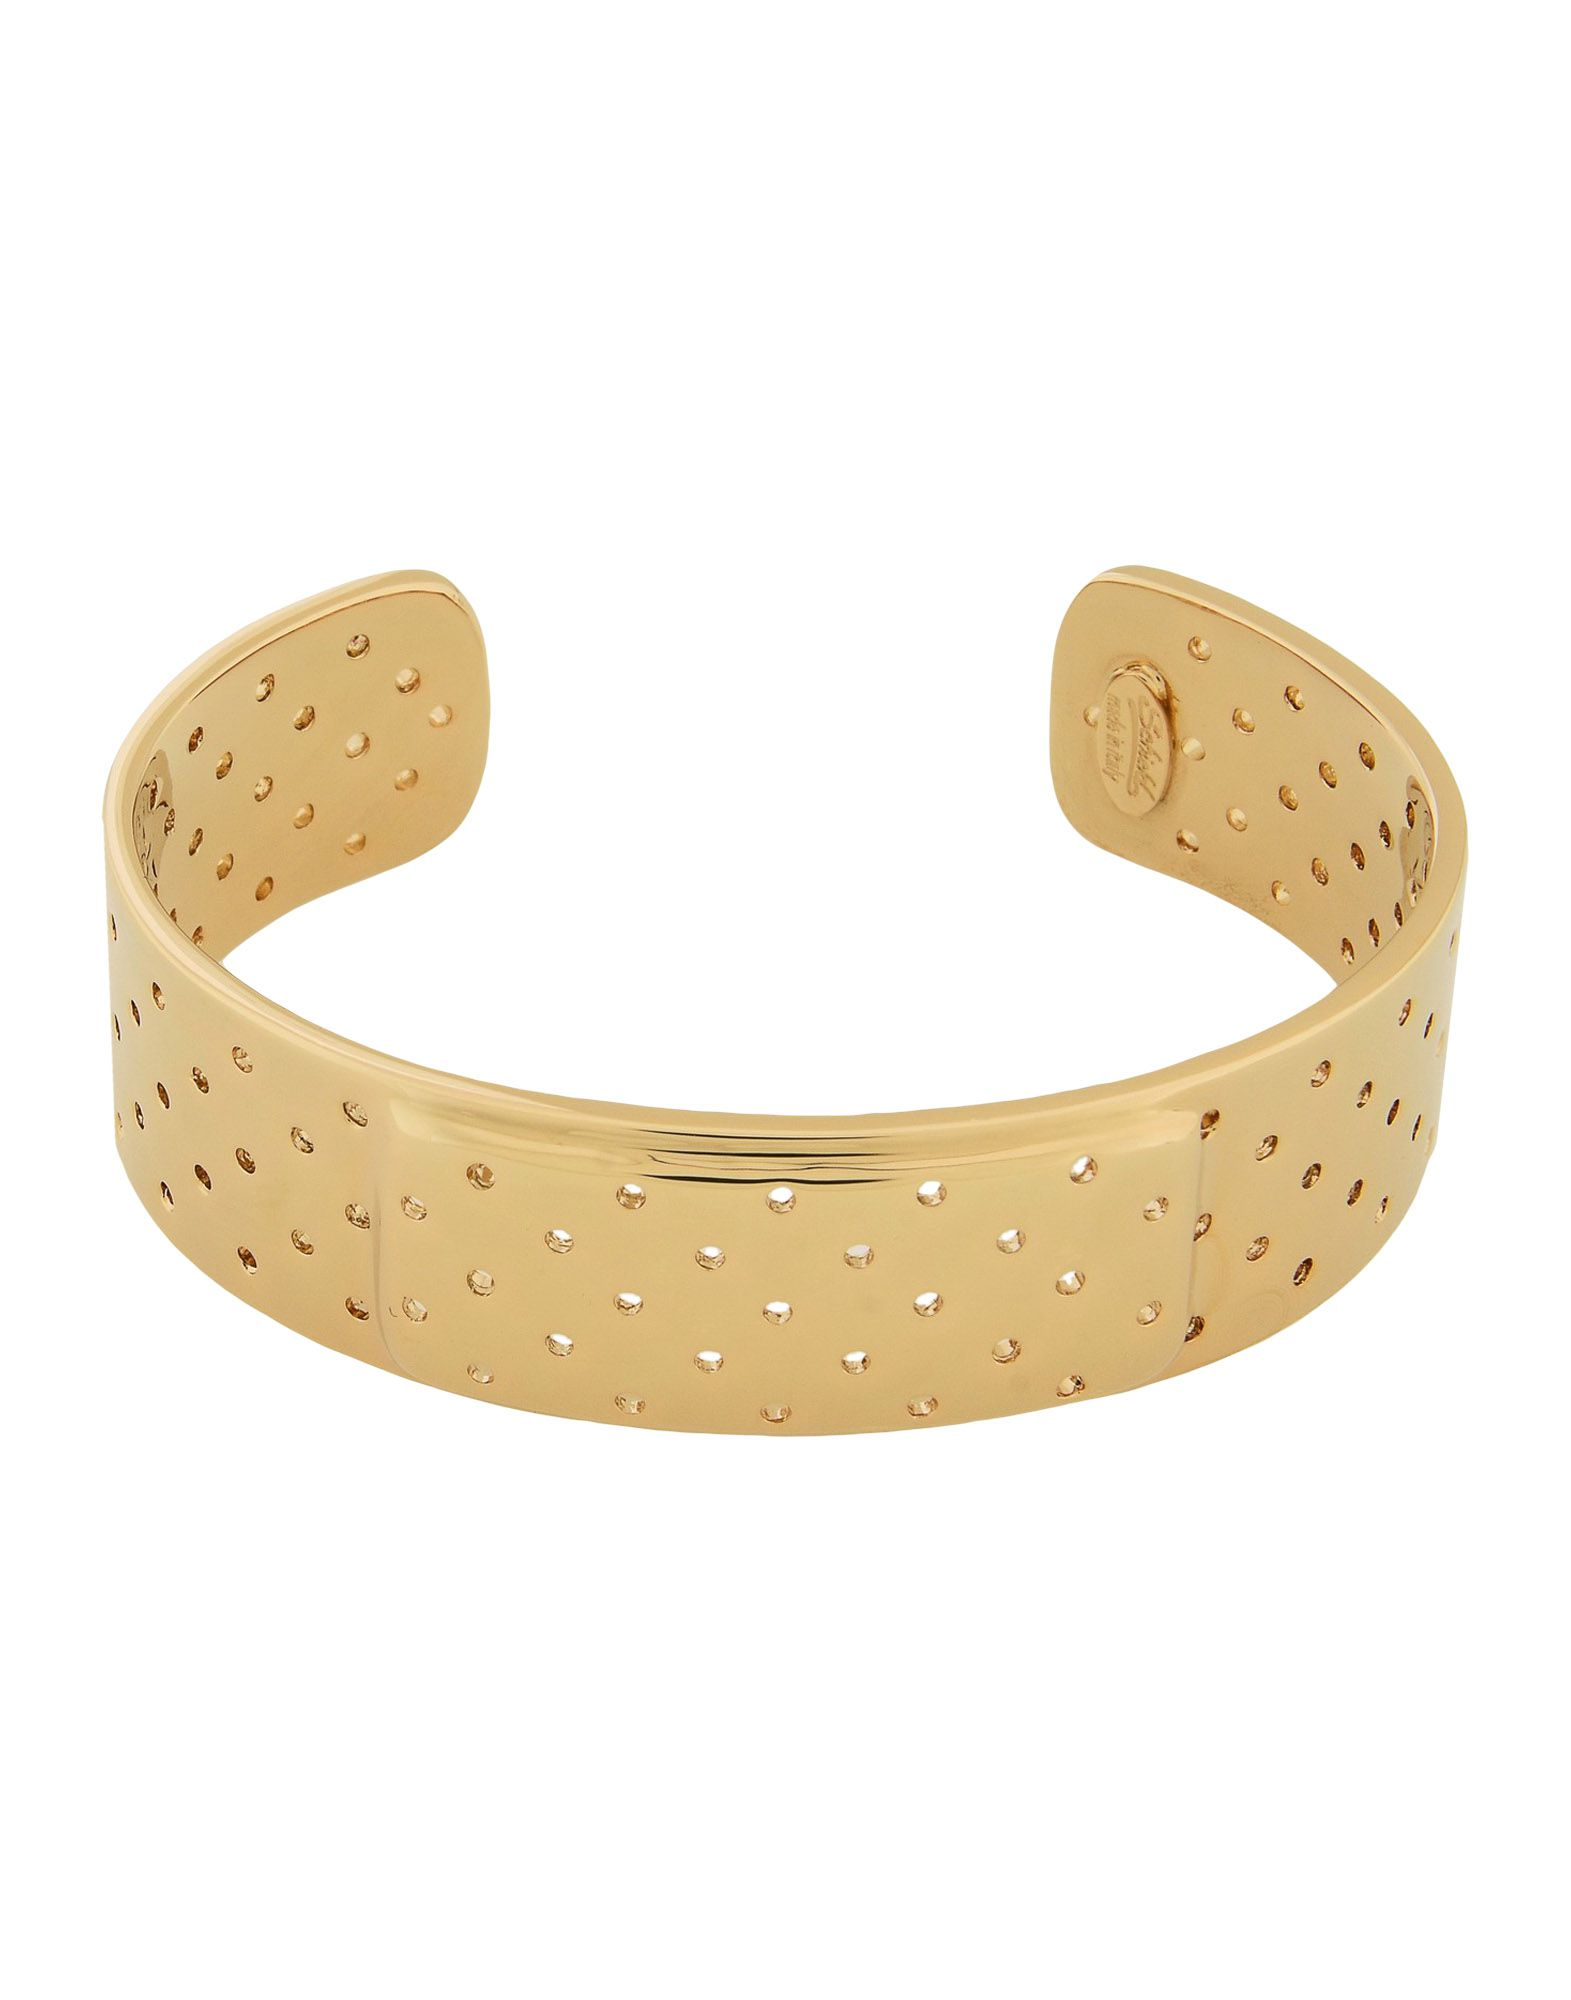 SCHIELD Bracelet in Gold